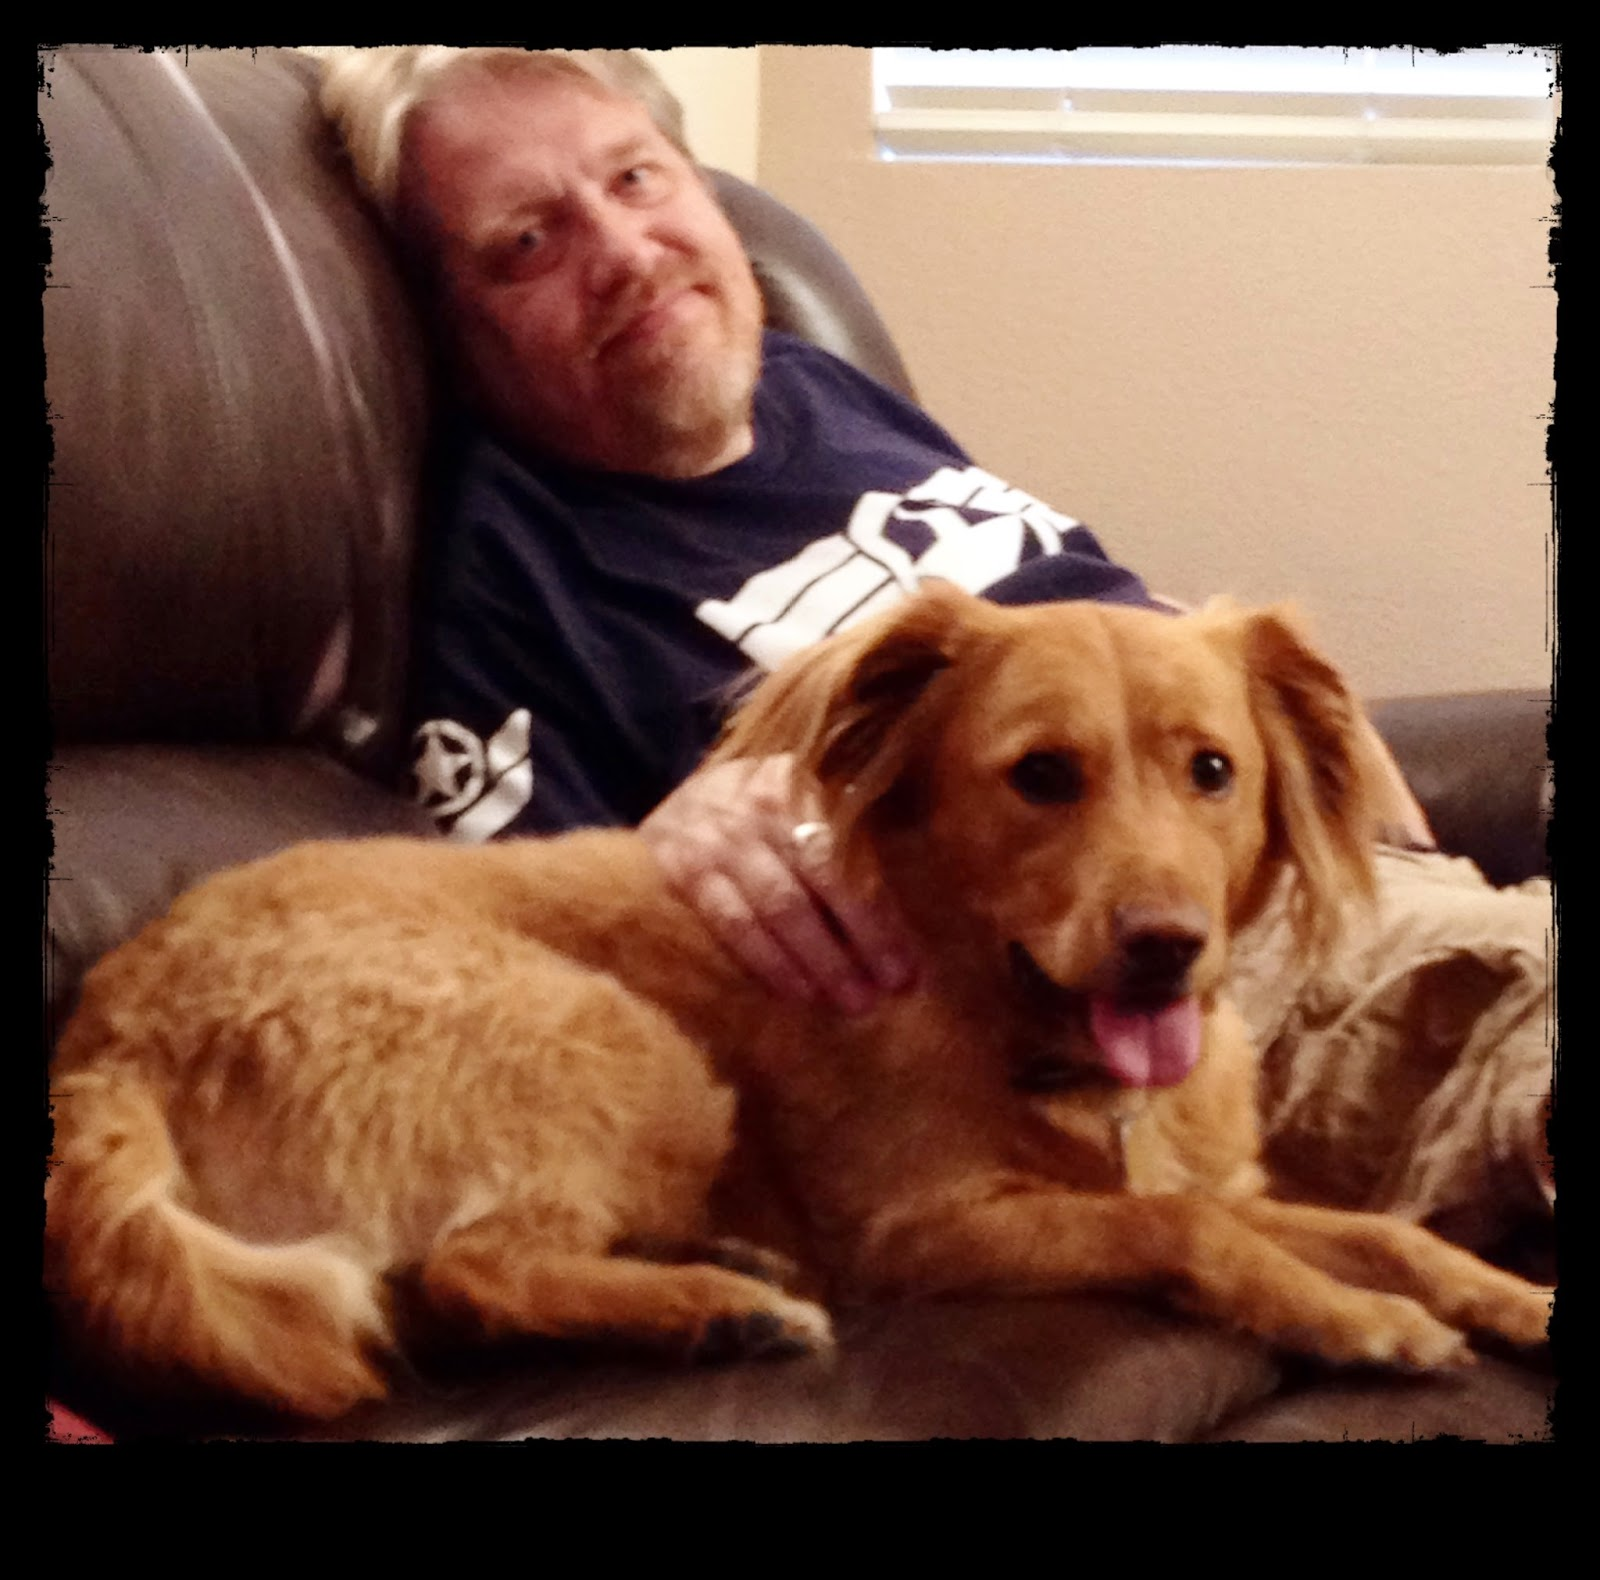 Man's (new) Best Friend, 11-8-2014 (The 3 Rs Blog)